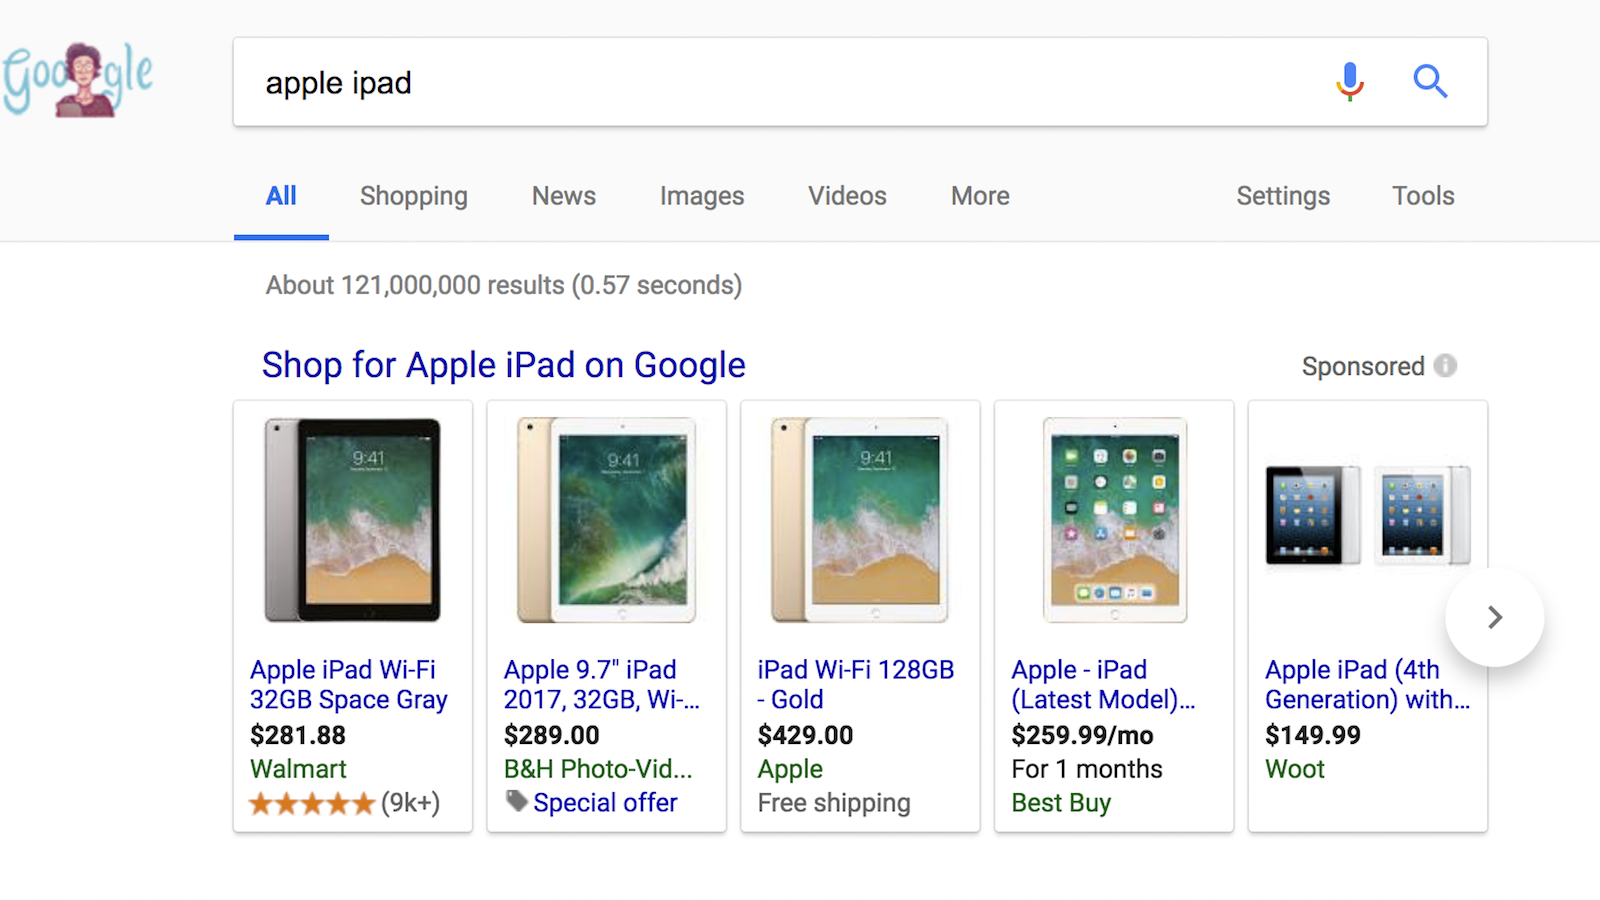 Shopping ads on Google, Bing and Facebook